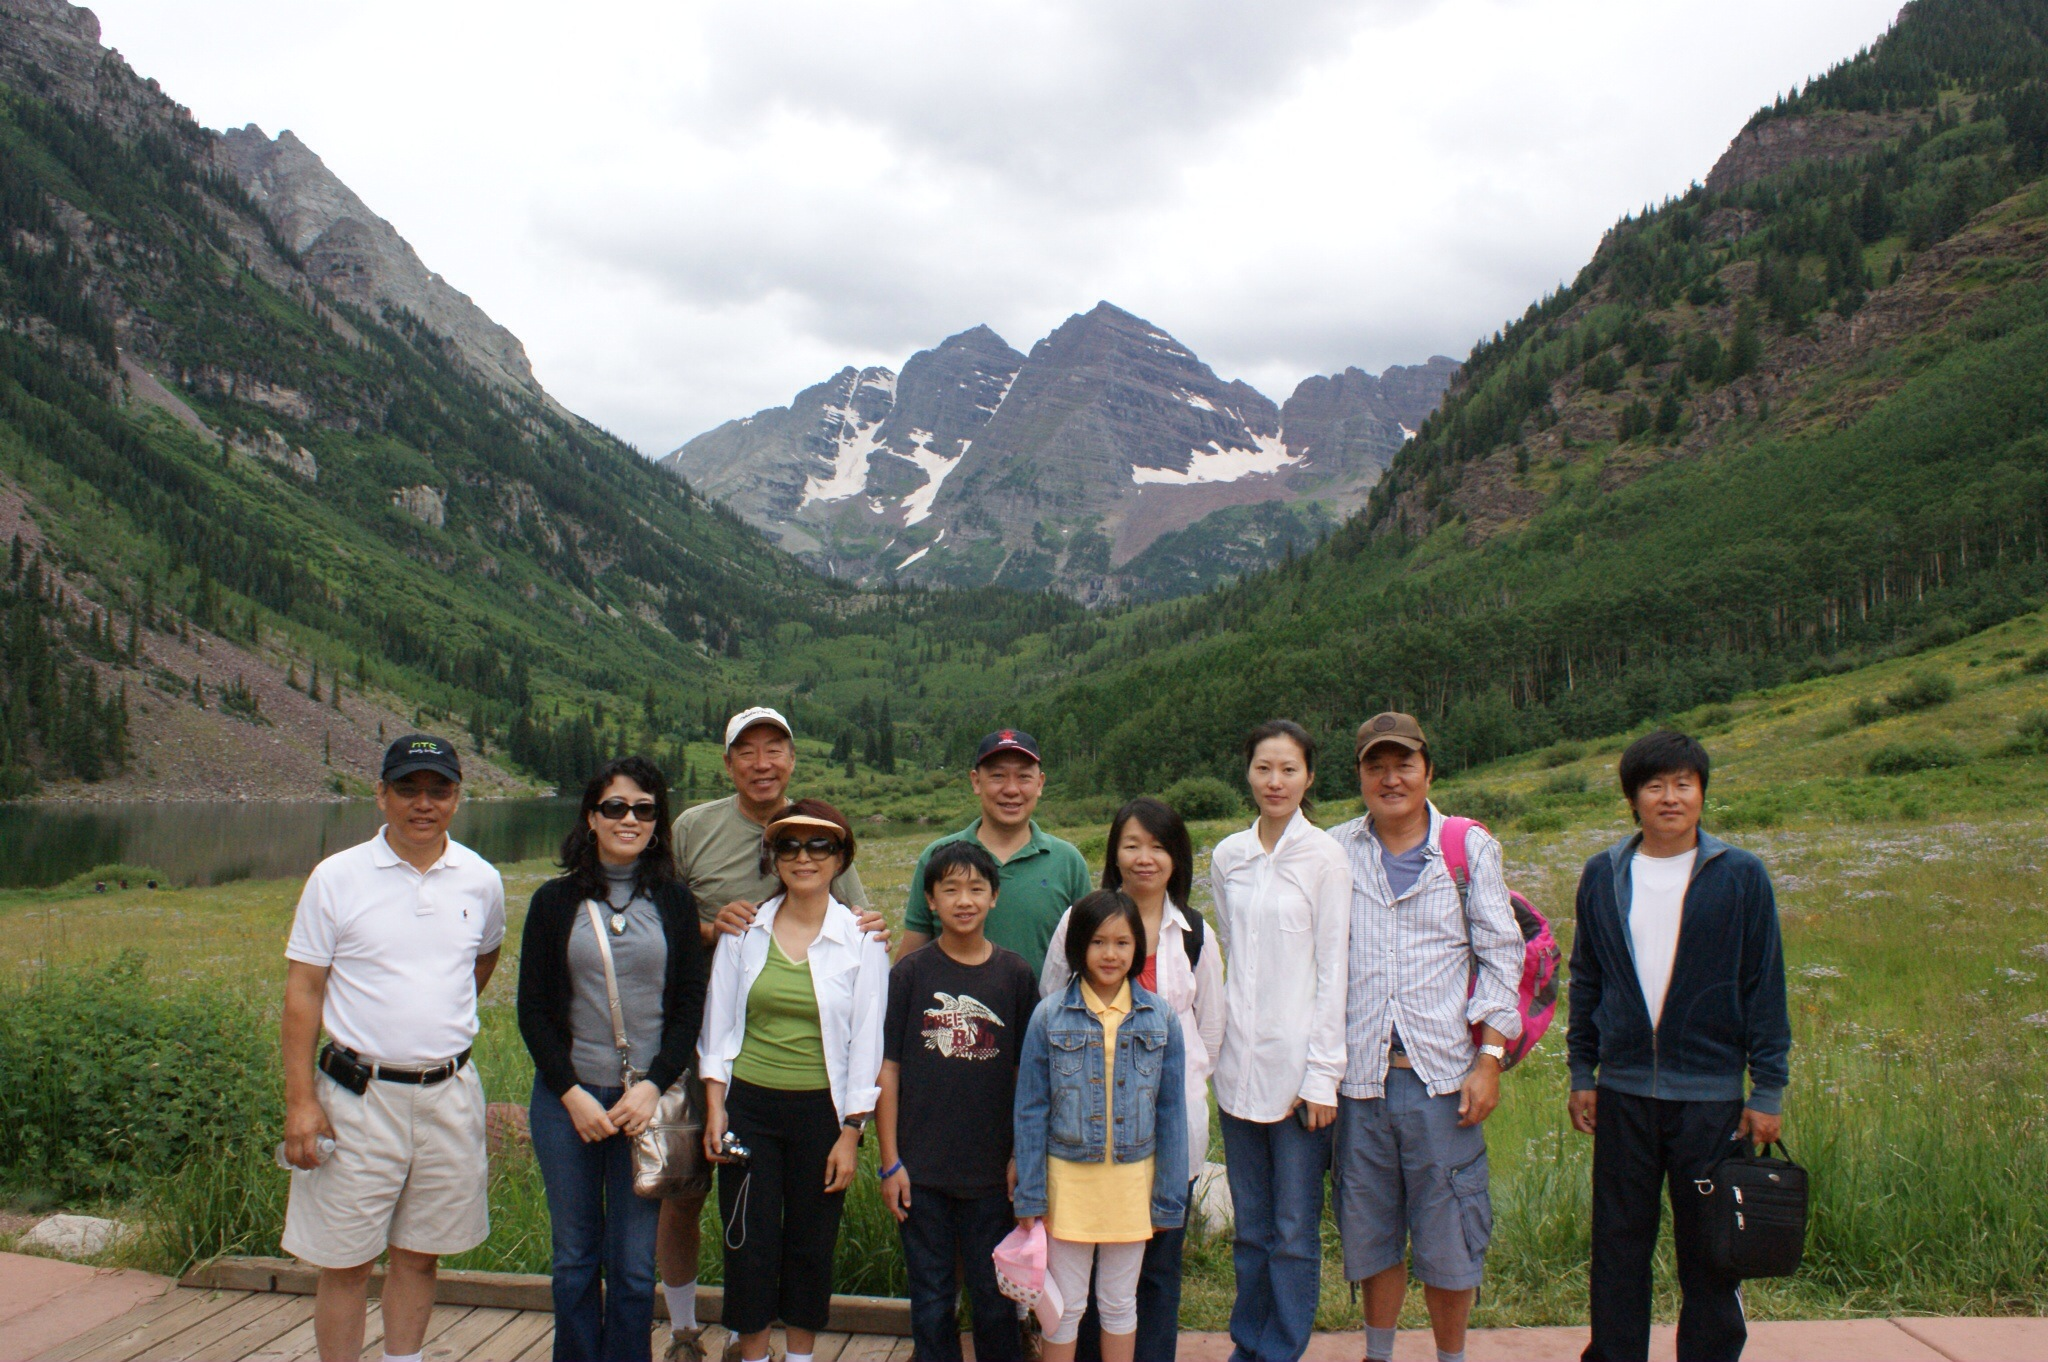 Maroon Bells - 9,500 feet